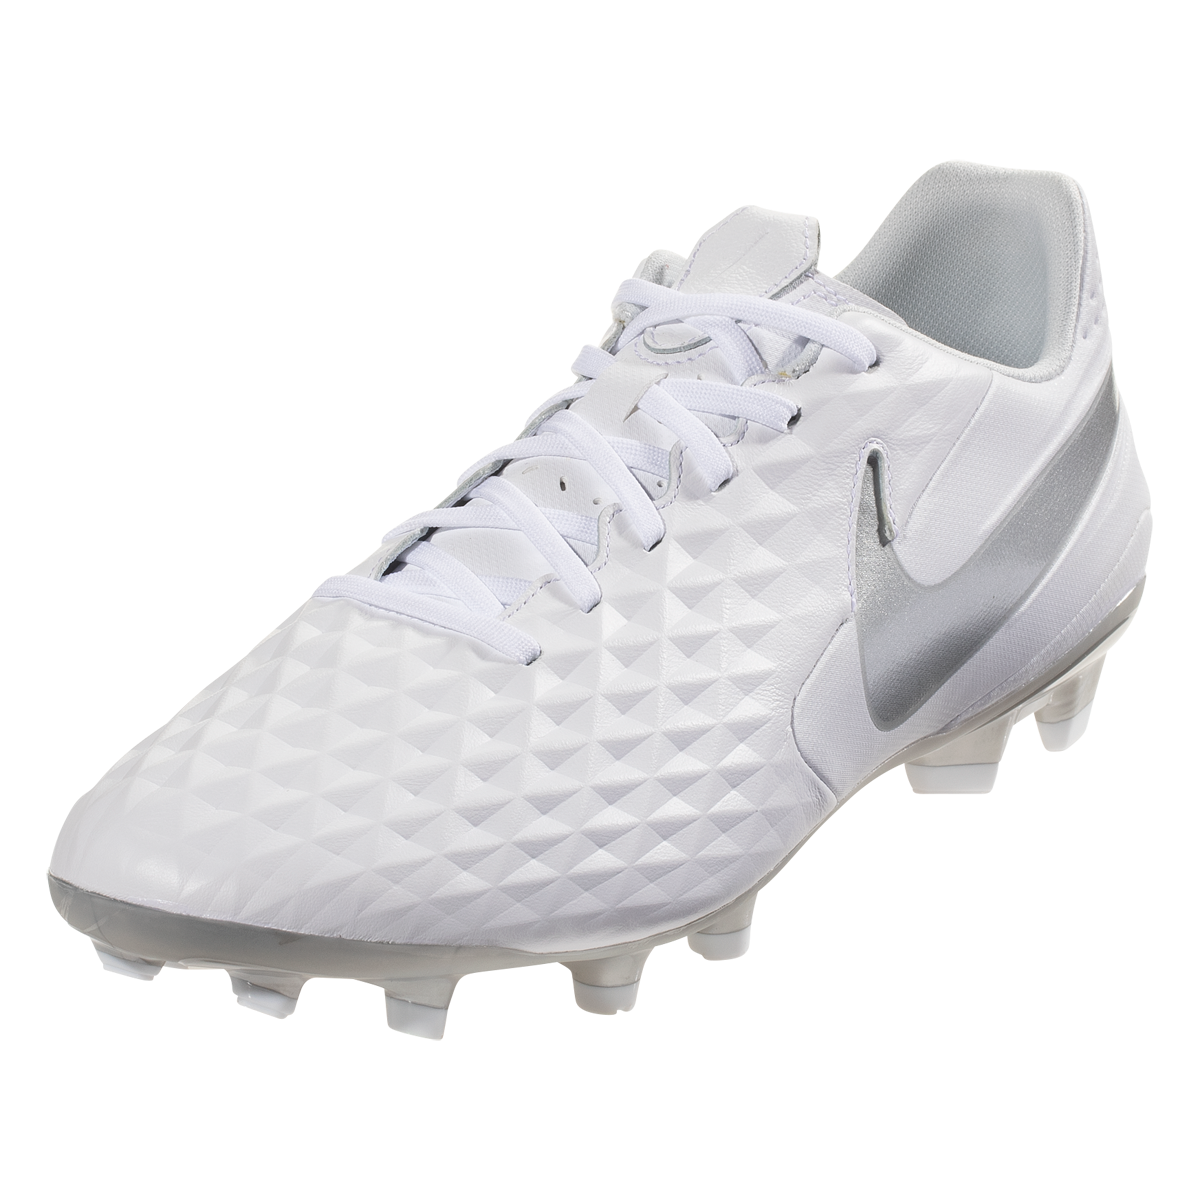 Nike Tiempo Legend 8 Academy FG Soccer Cleat WhiteChrome